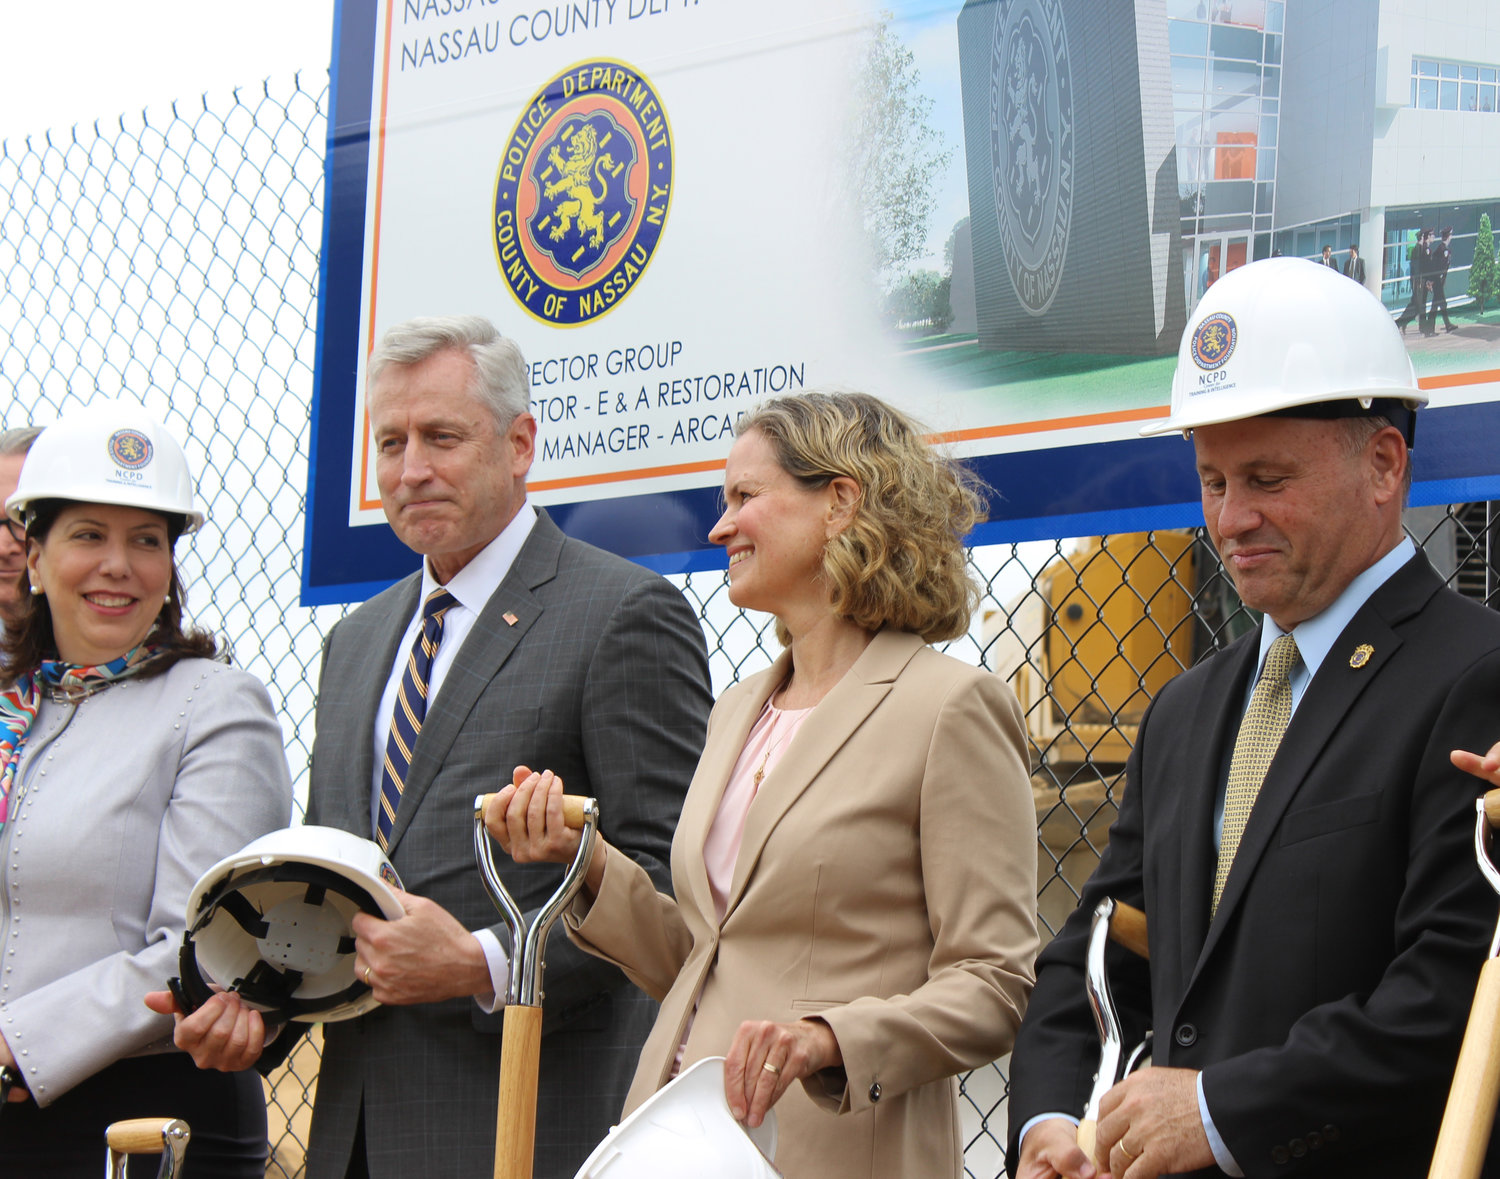 District Attorney Madeline Singas, left, Presiding Officer Richard Nicolello, County Executive Laura Curran and Police Commissioner Patrick Ryder dug shovels in the ground to symbolize the construction of the new facility.